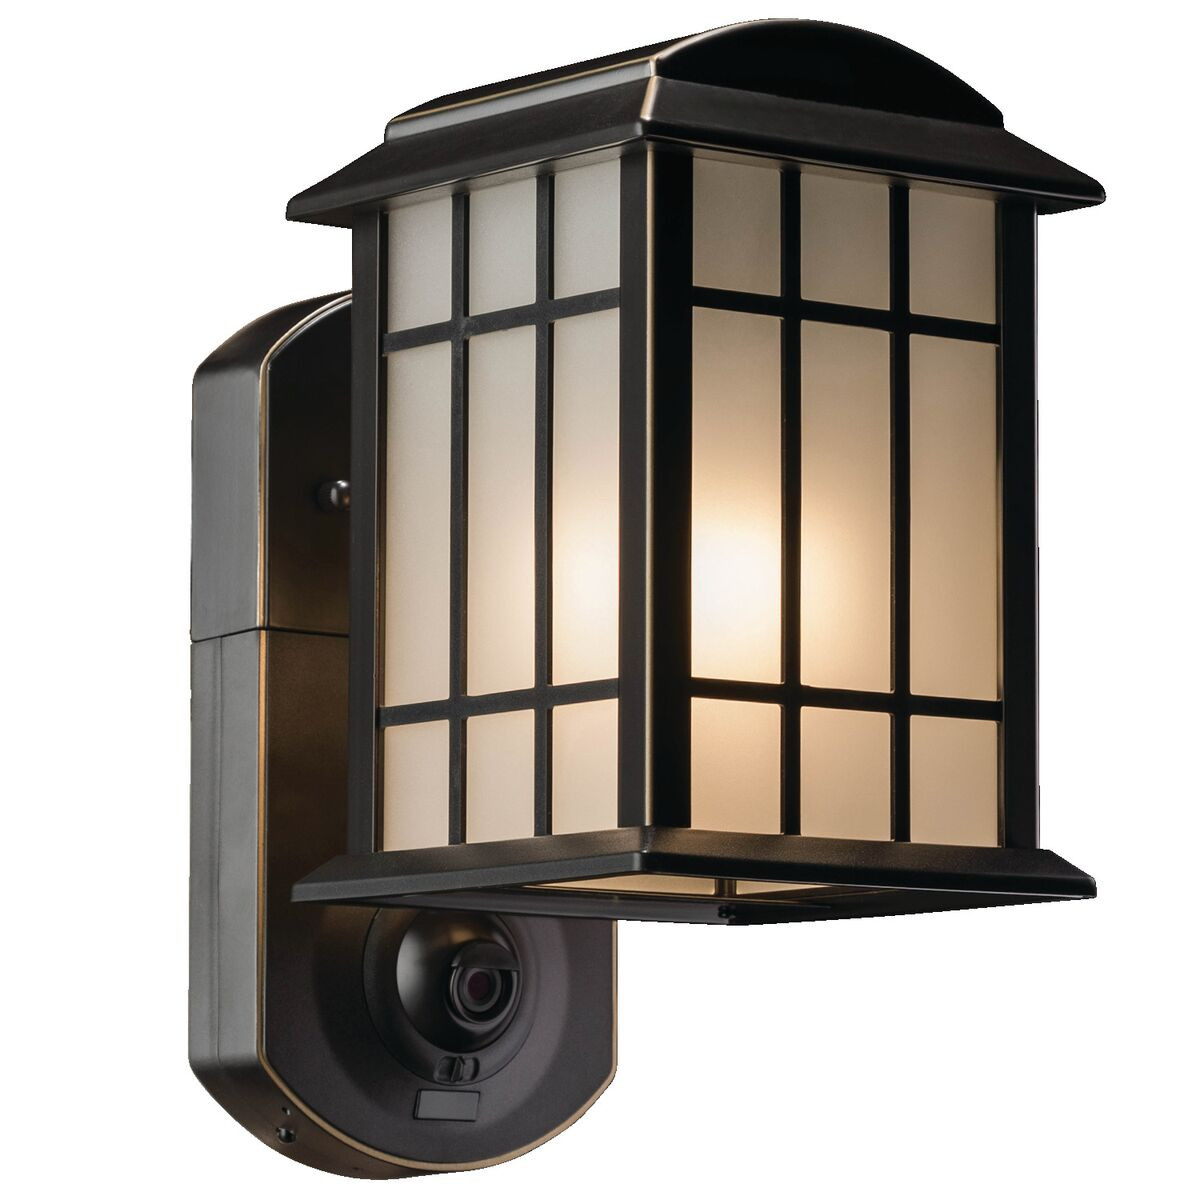 Best ideas about Outdoor Light With Camera . Save or Pin Maximus Smart Home Security Outdoor Light Camera Now.